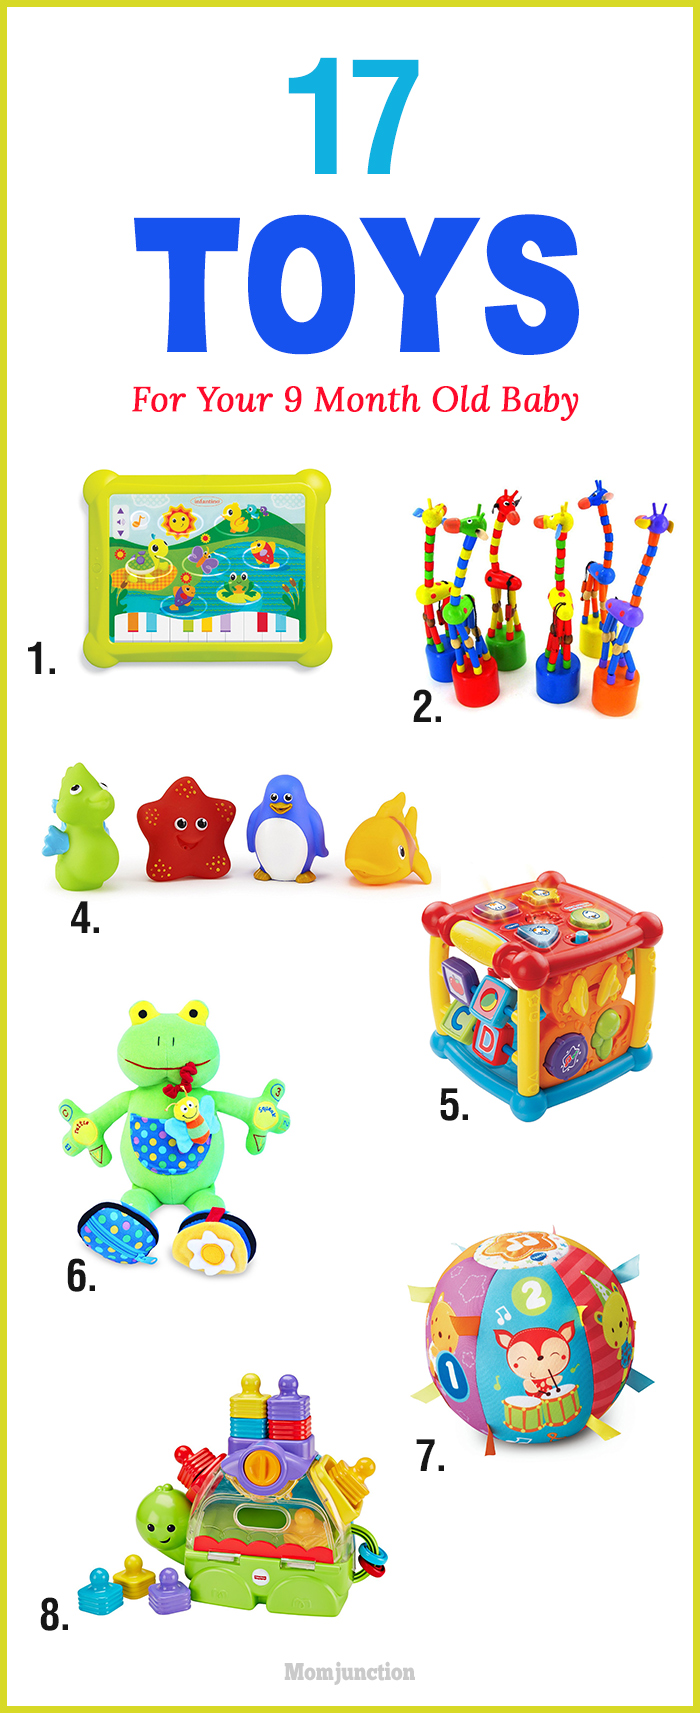 Best Baby Toys 2013 : Top best ideas about toys